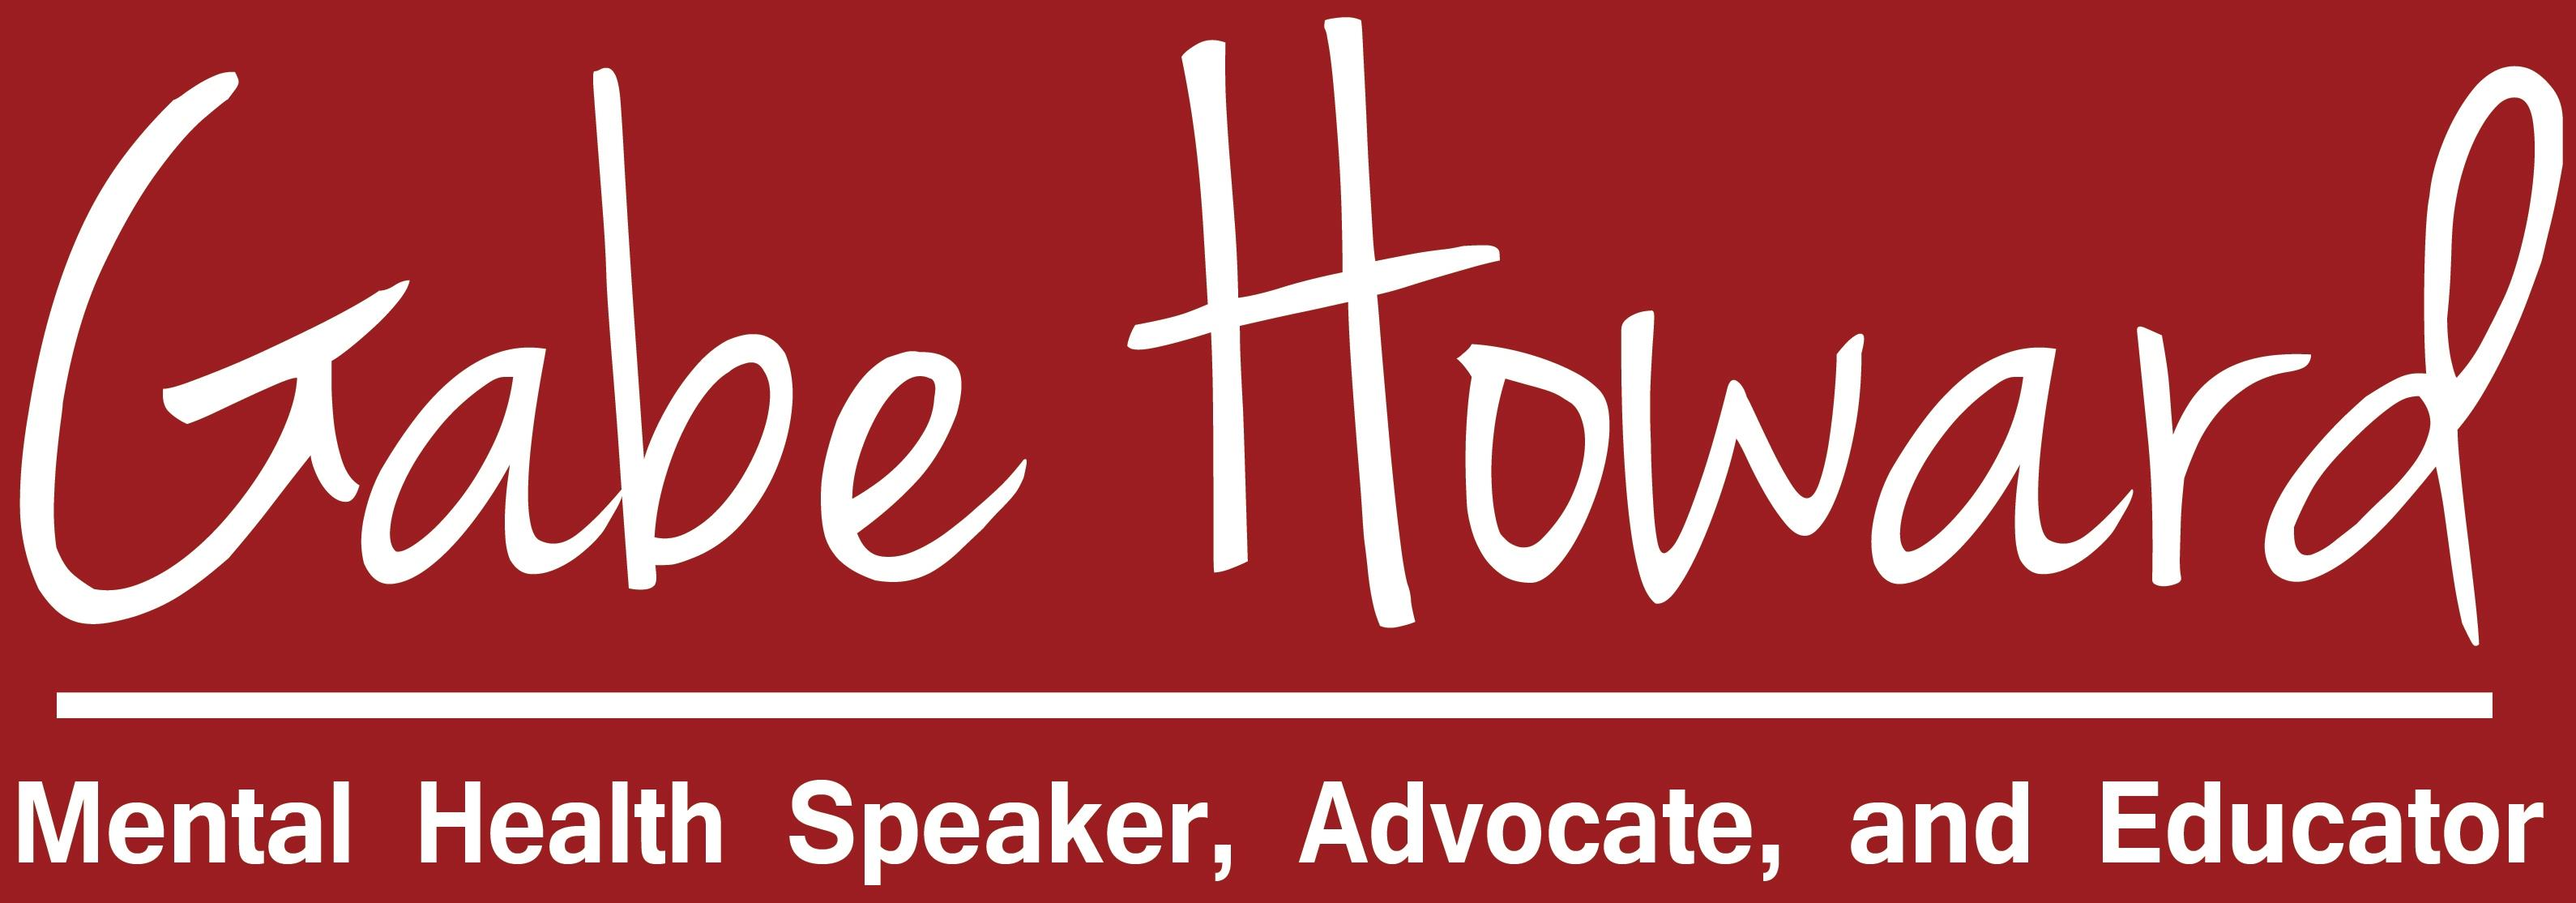 Gabe Howard:  Mental Health Speaker and Educator